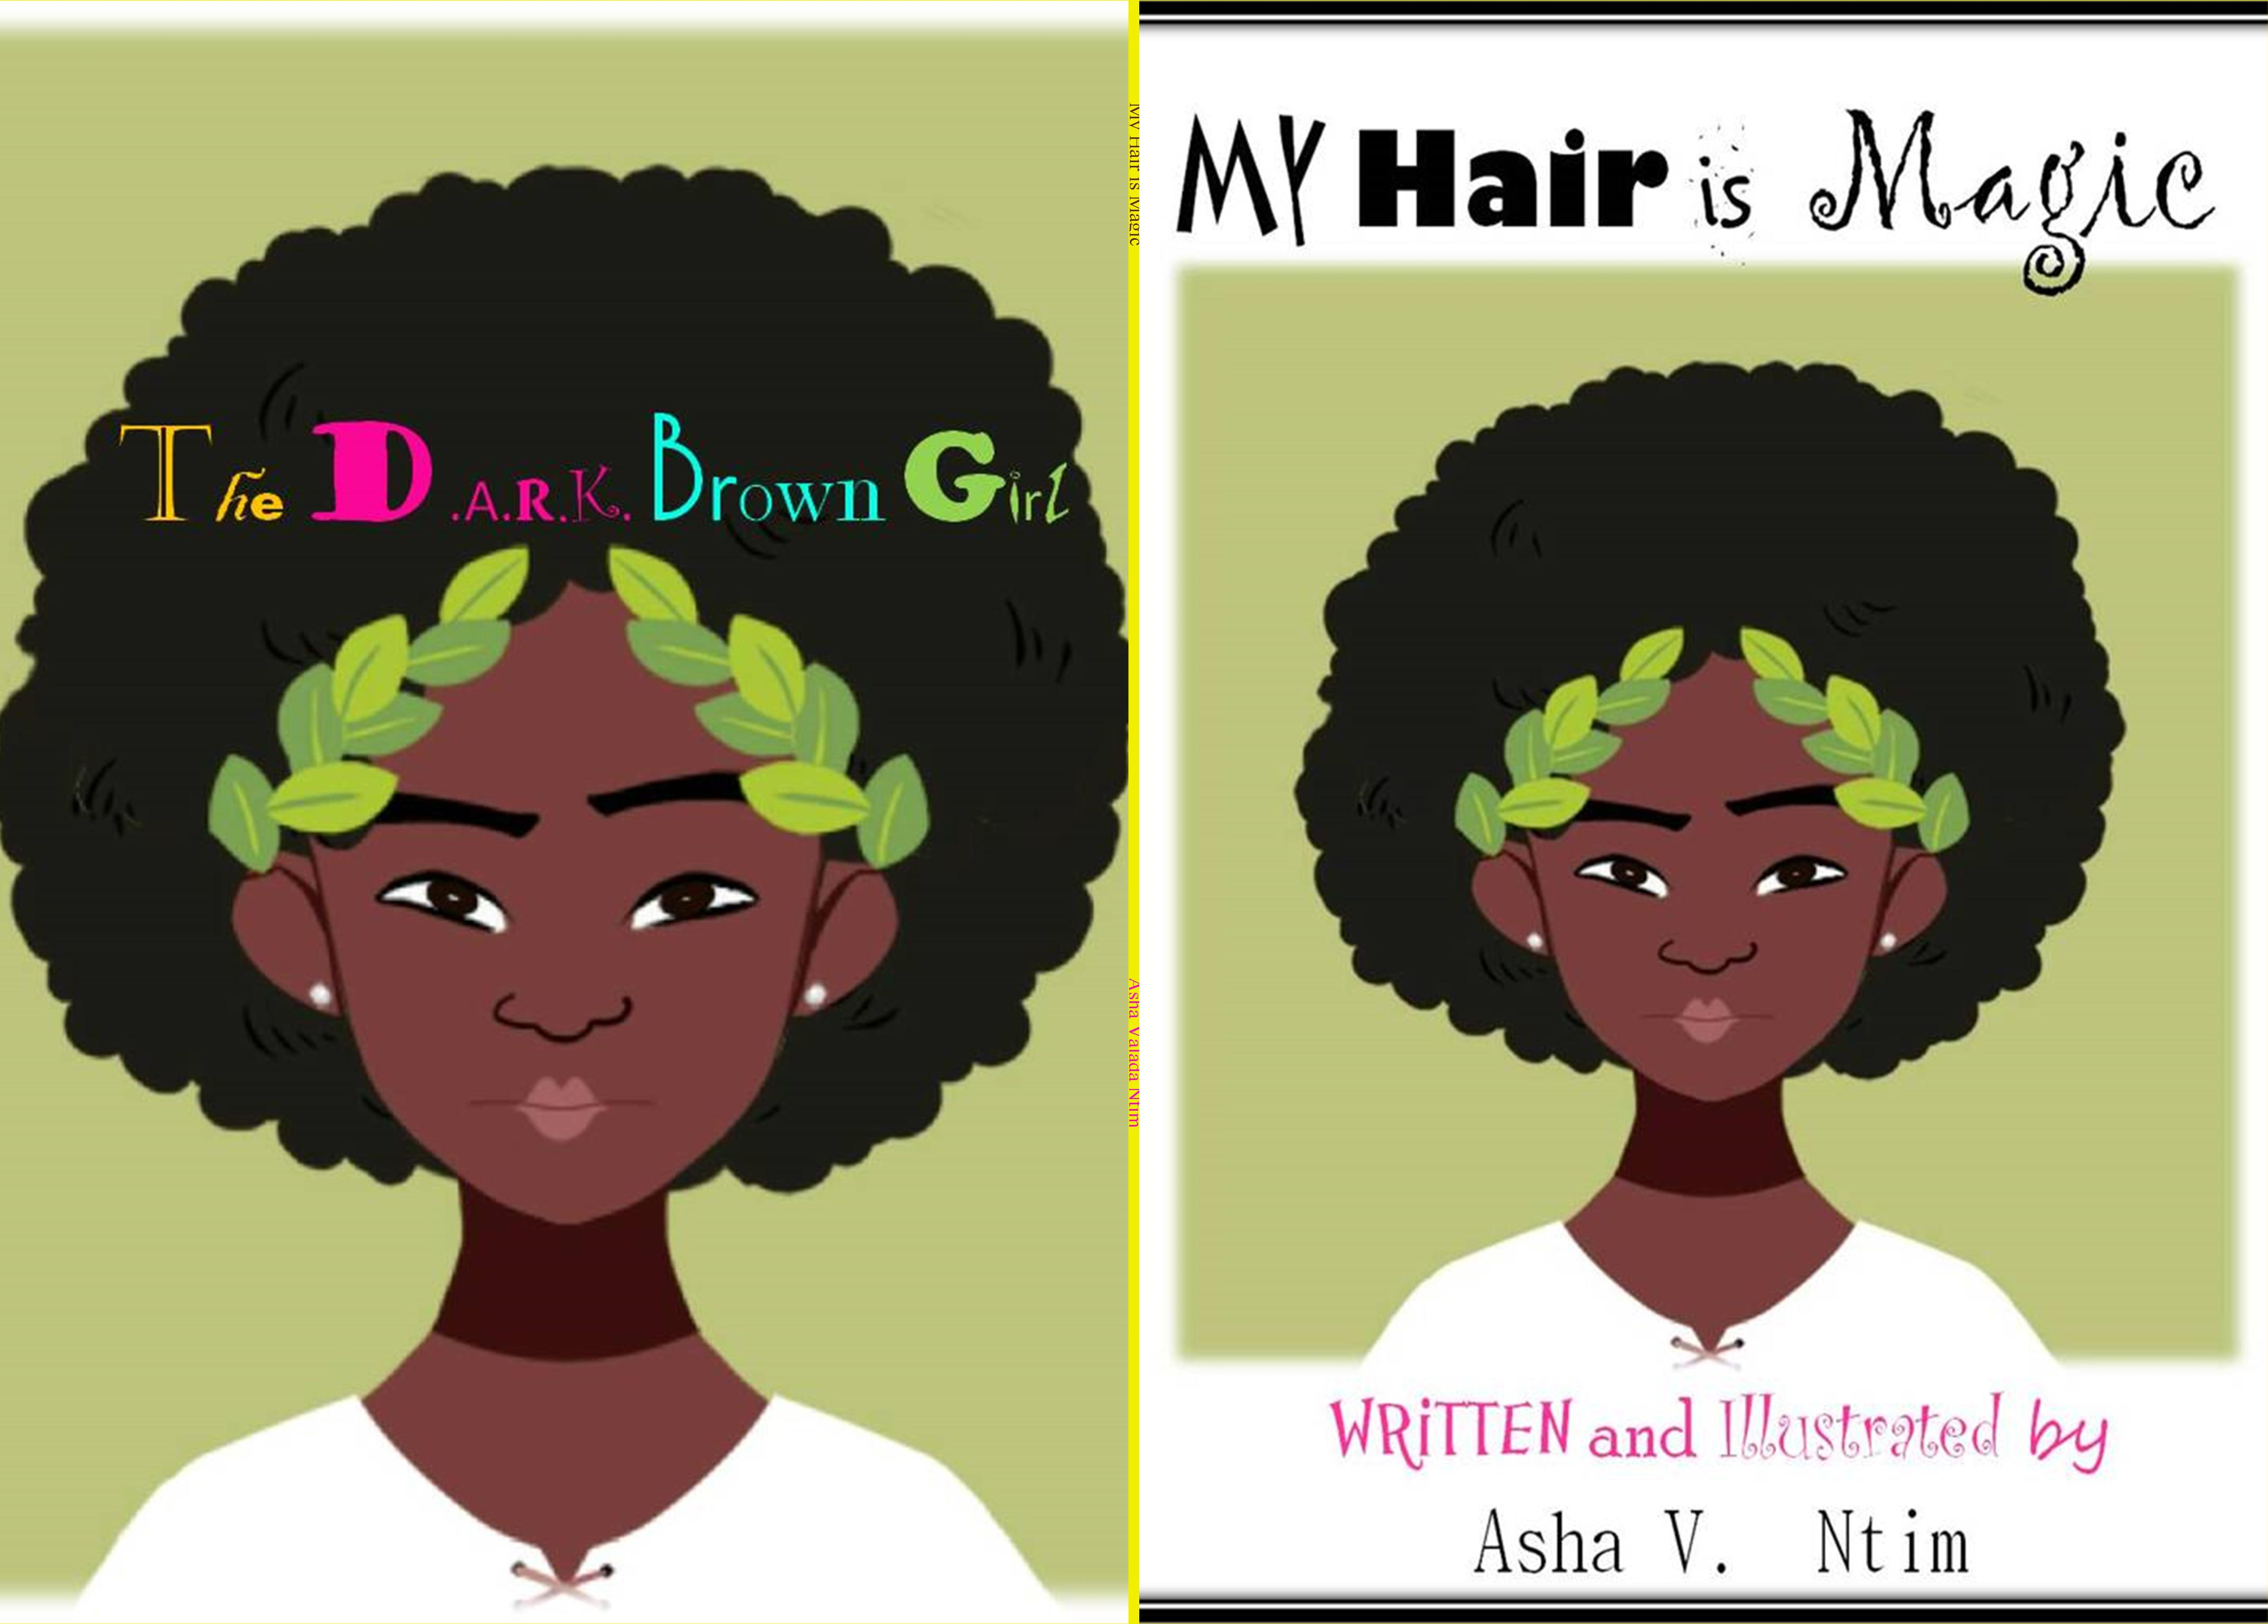 My Hair is Magic cover image